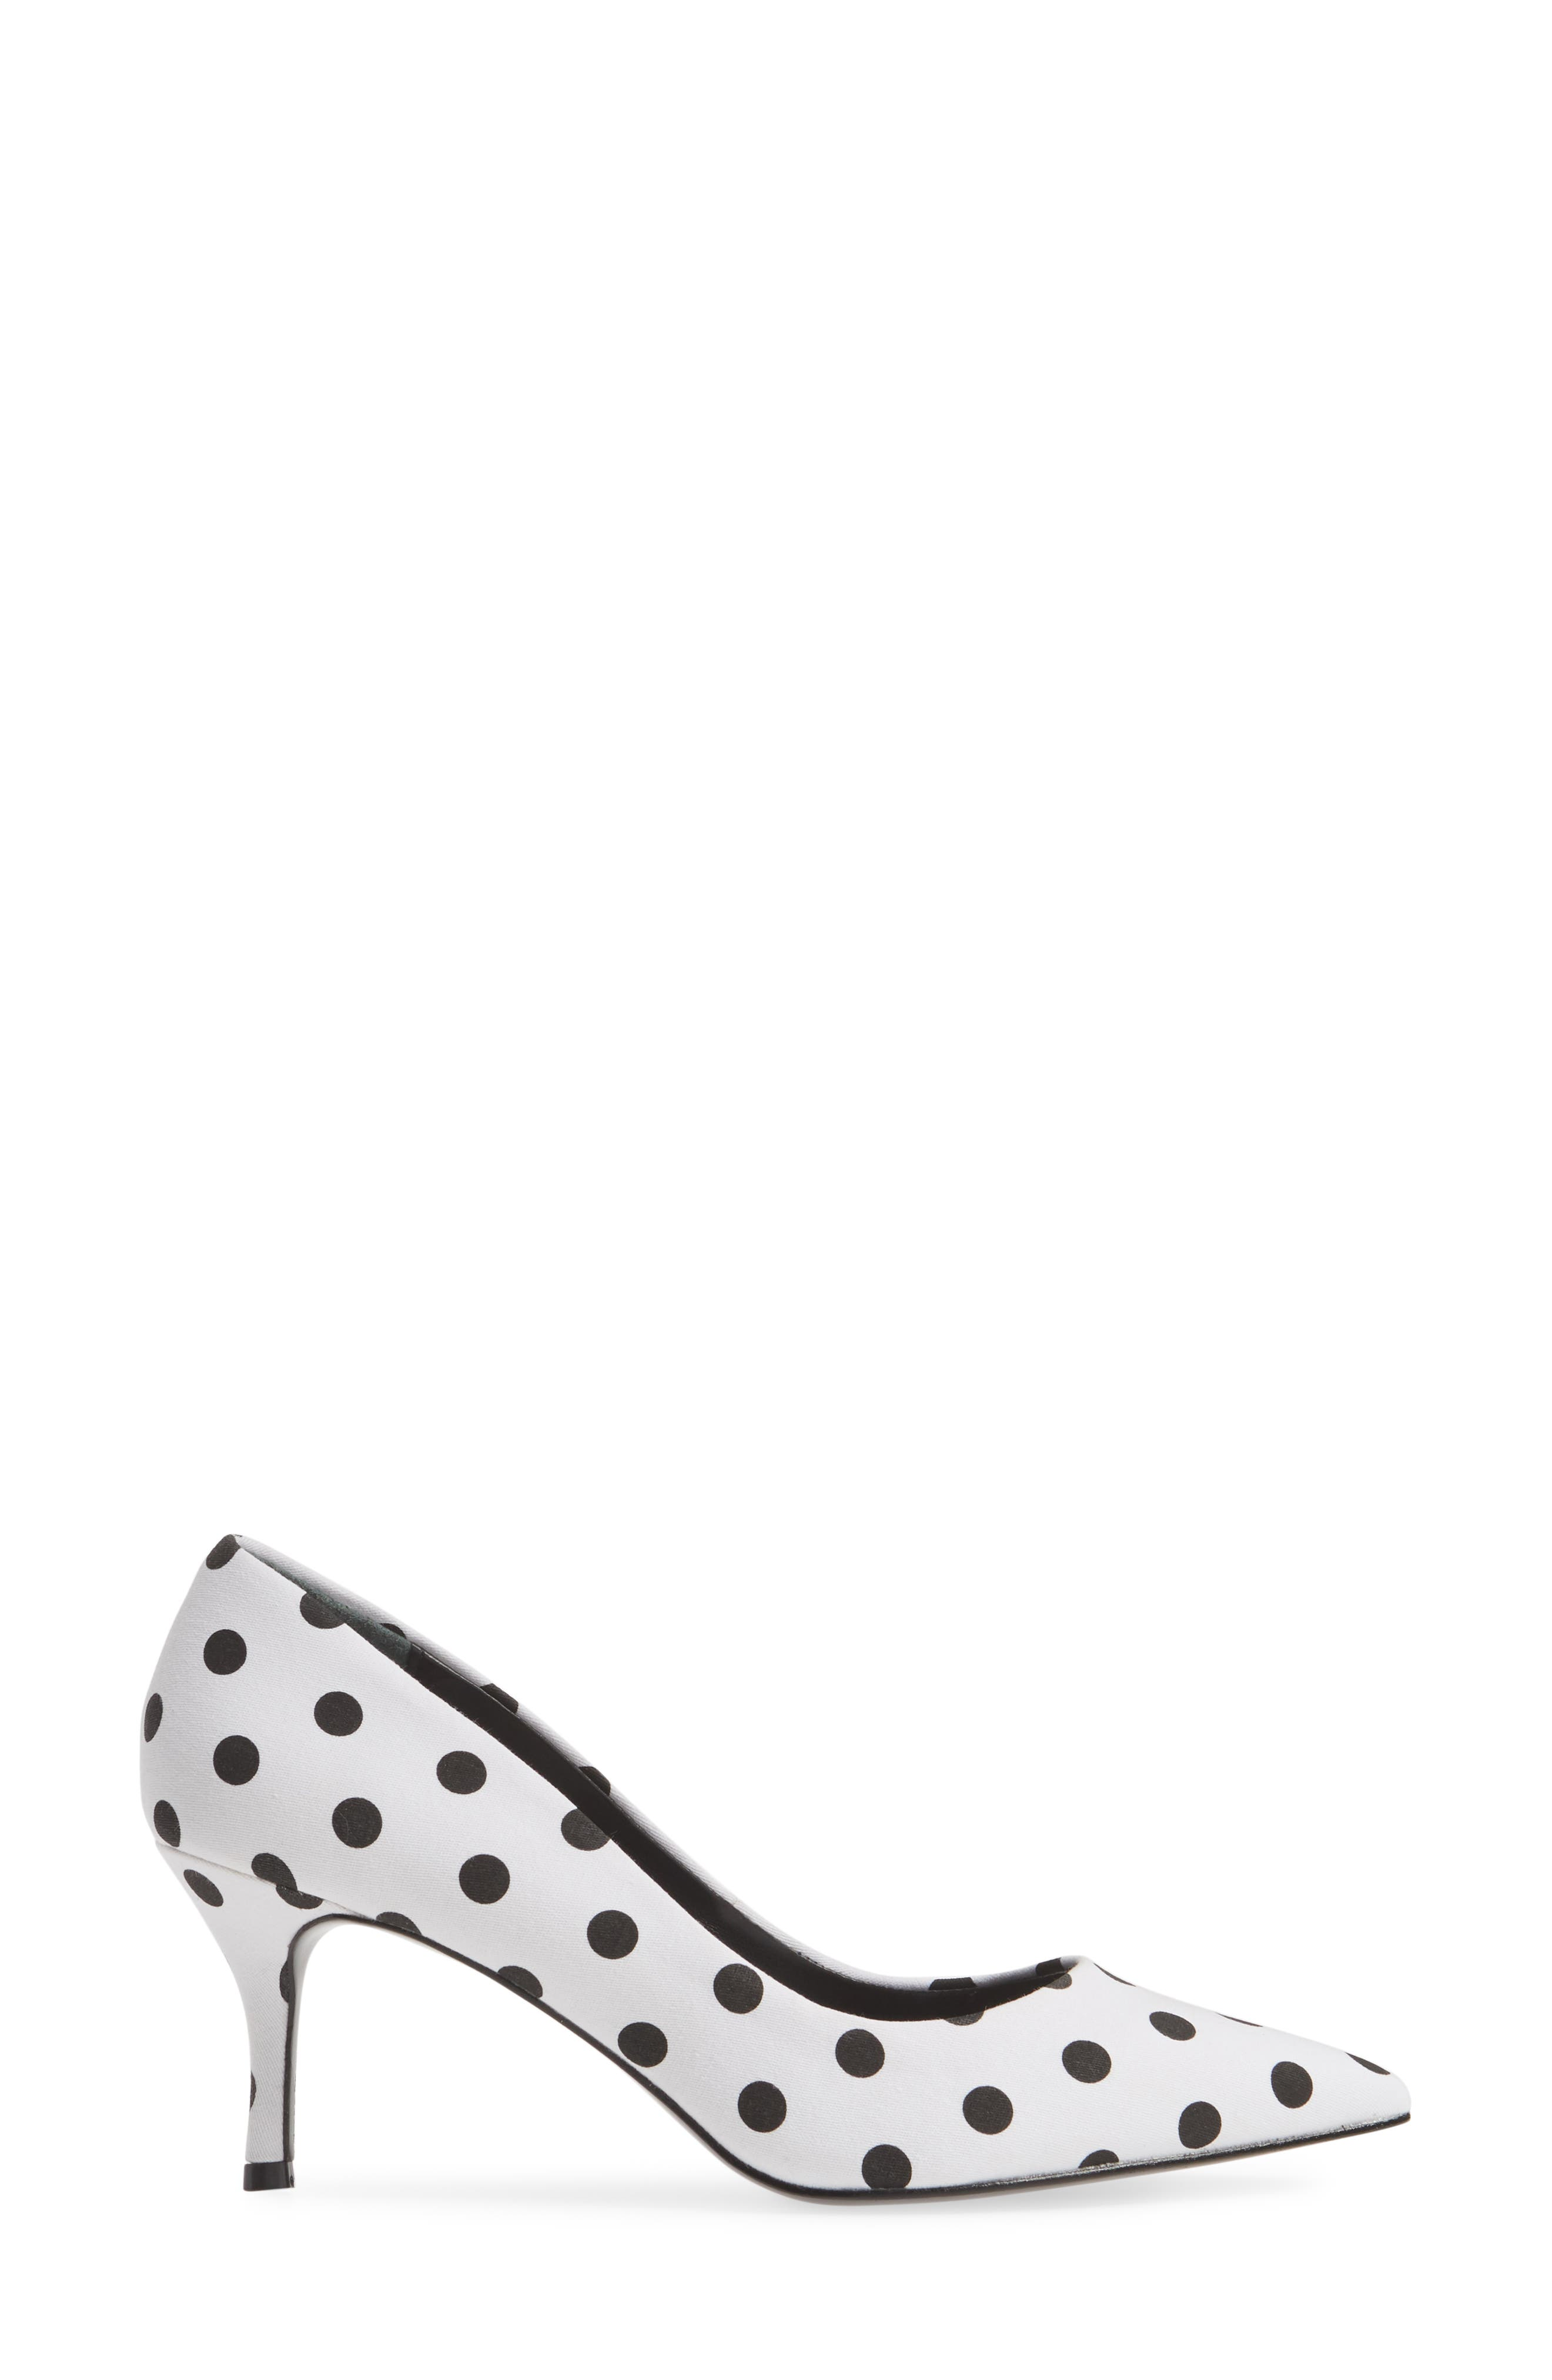 CHARLES BY CHARLES DAVID, Addie Pump, Alternate thumbnail 3, color, WHITE/ BLACK FABRIC